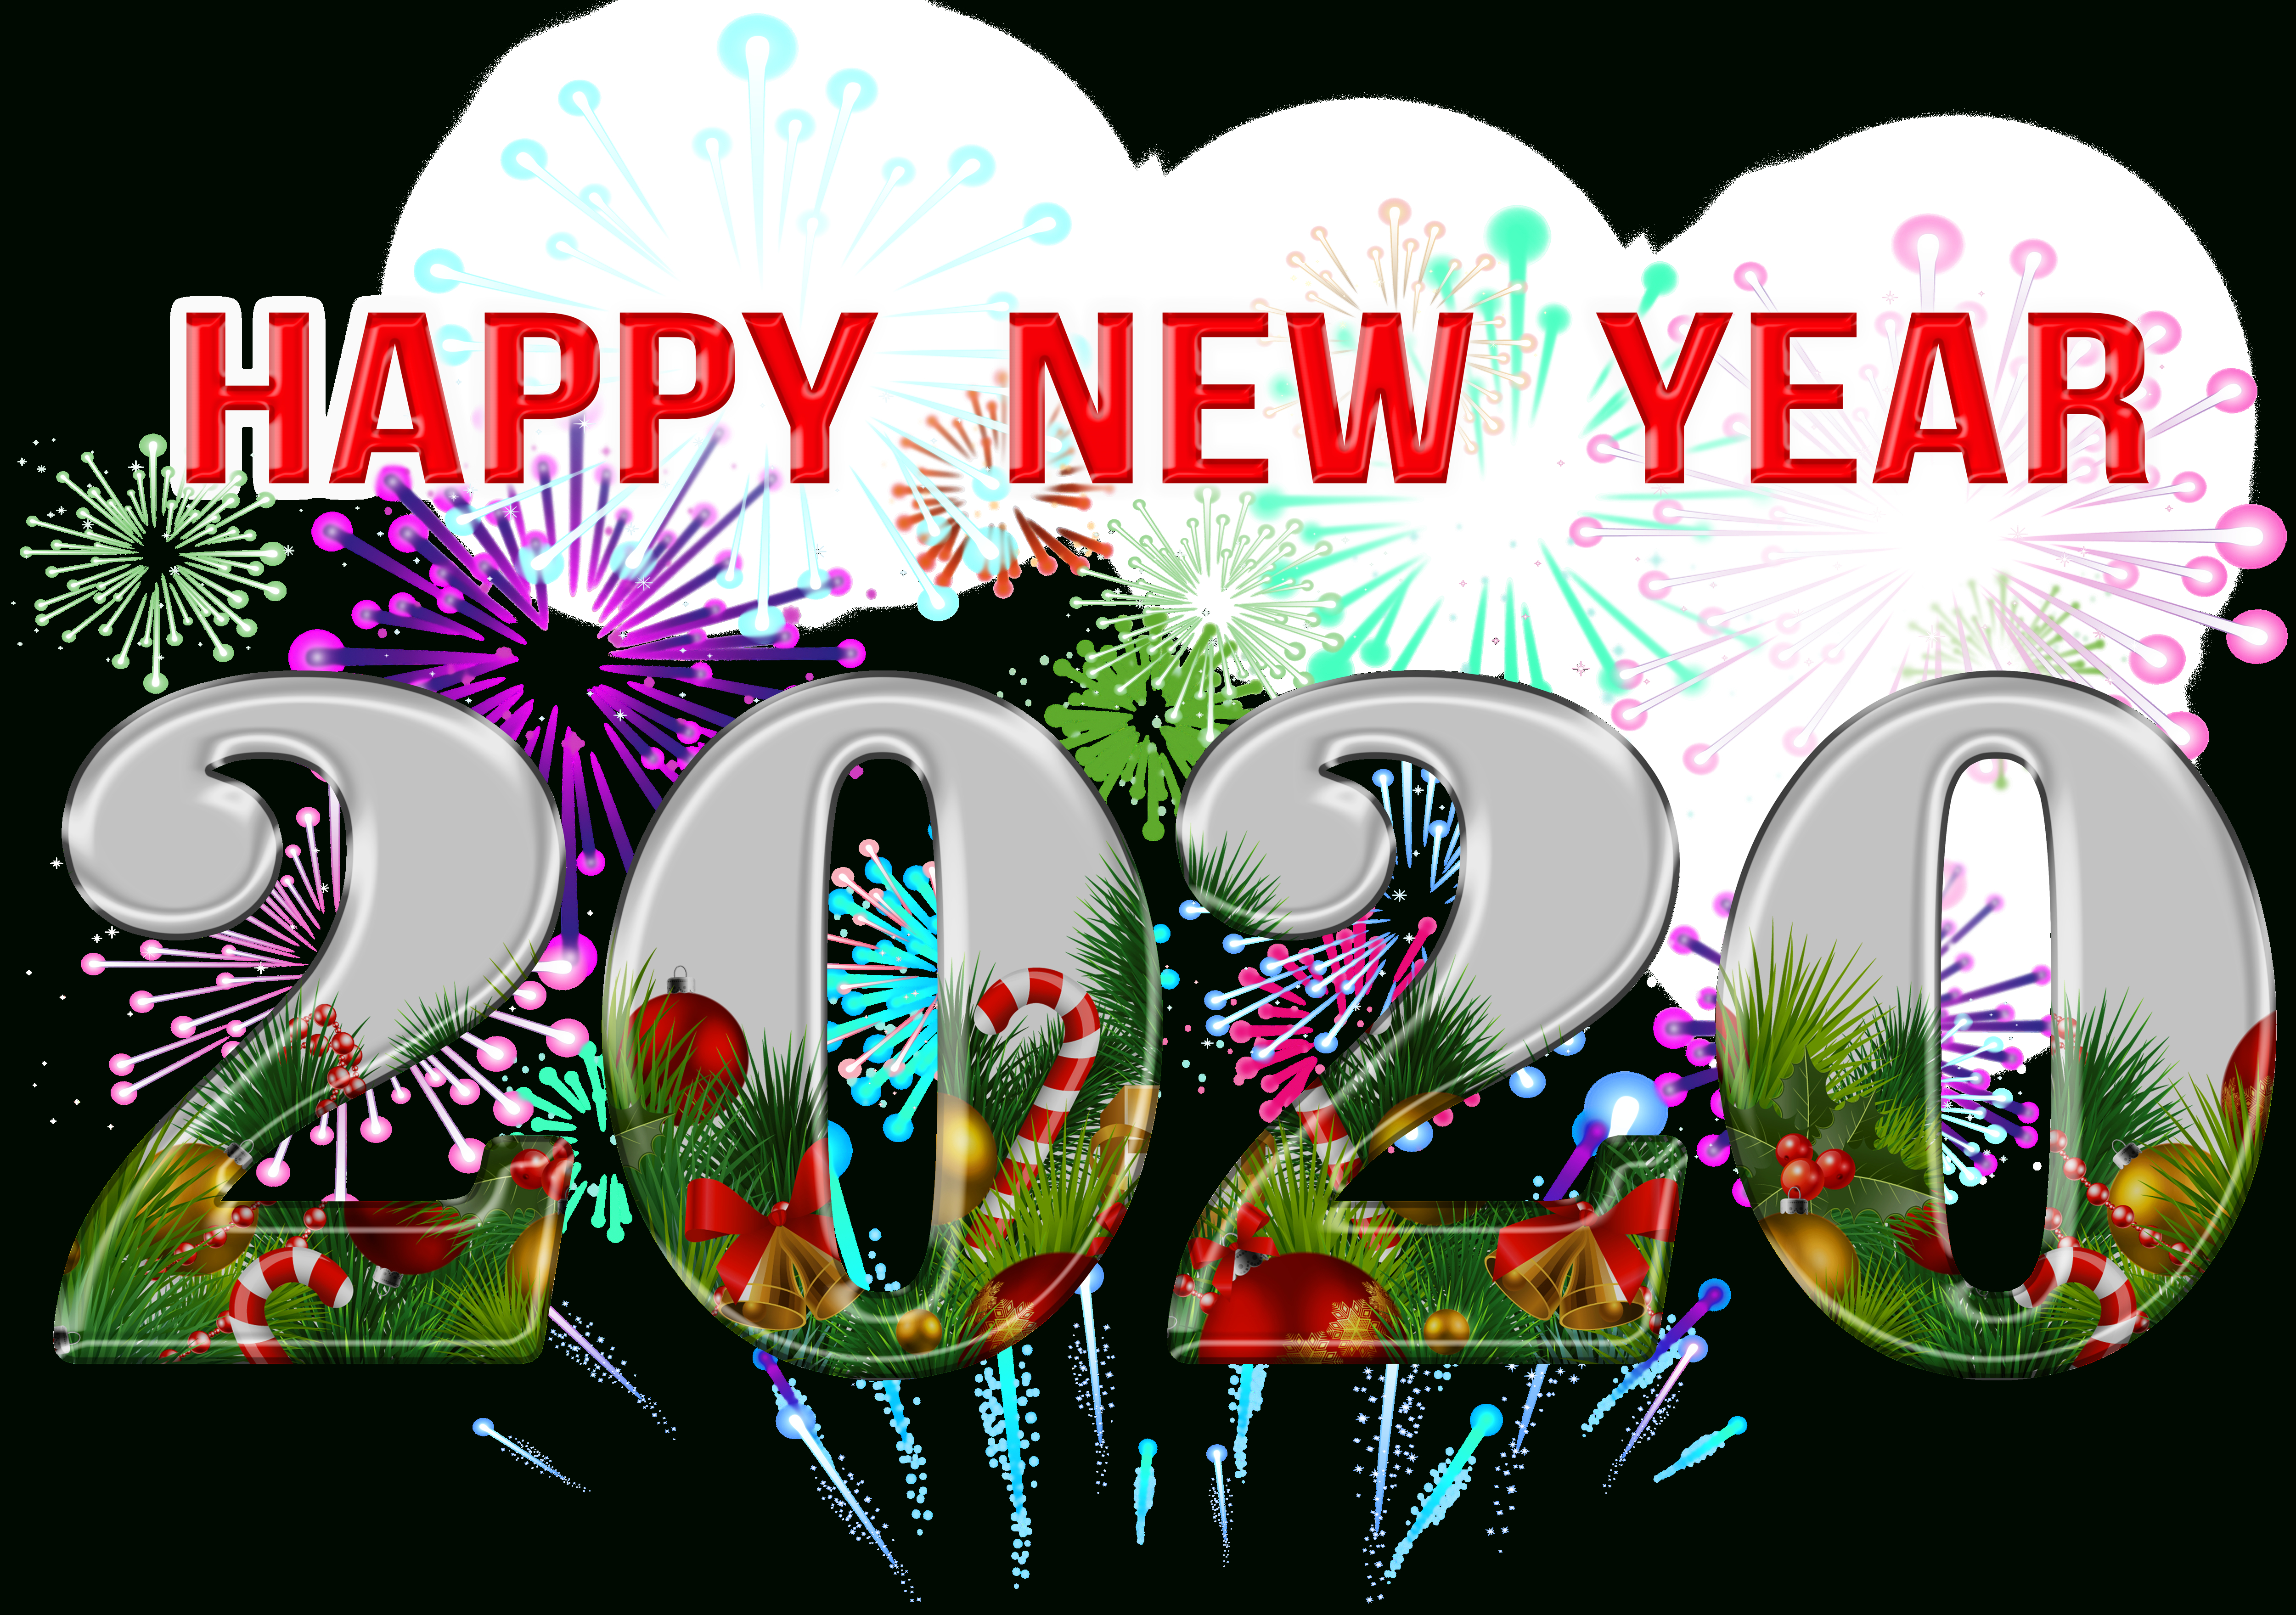 8571 2020 Free Clipart  42 in 2020 Transparent Background